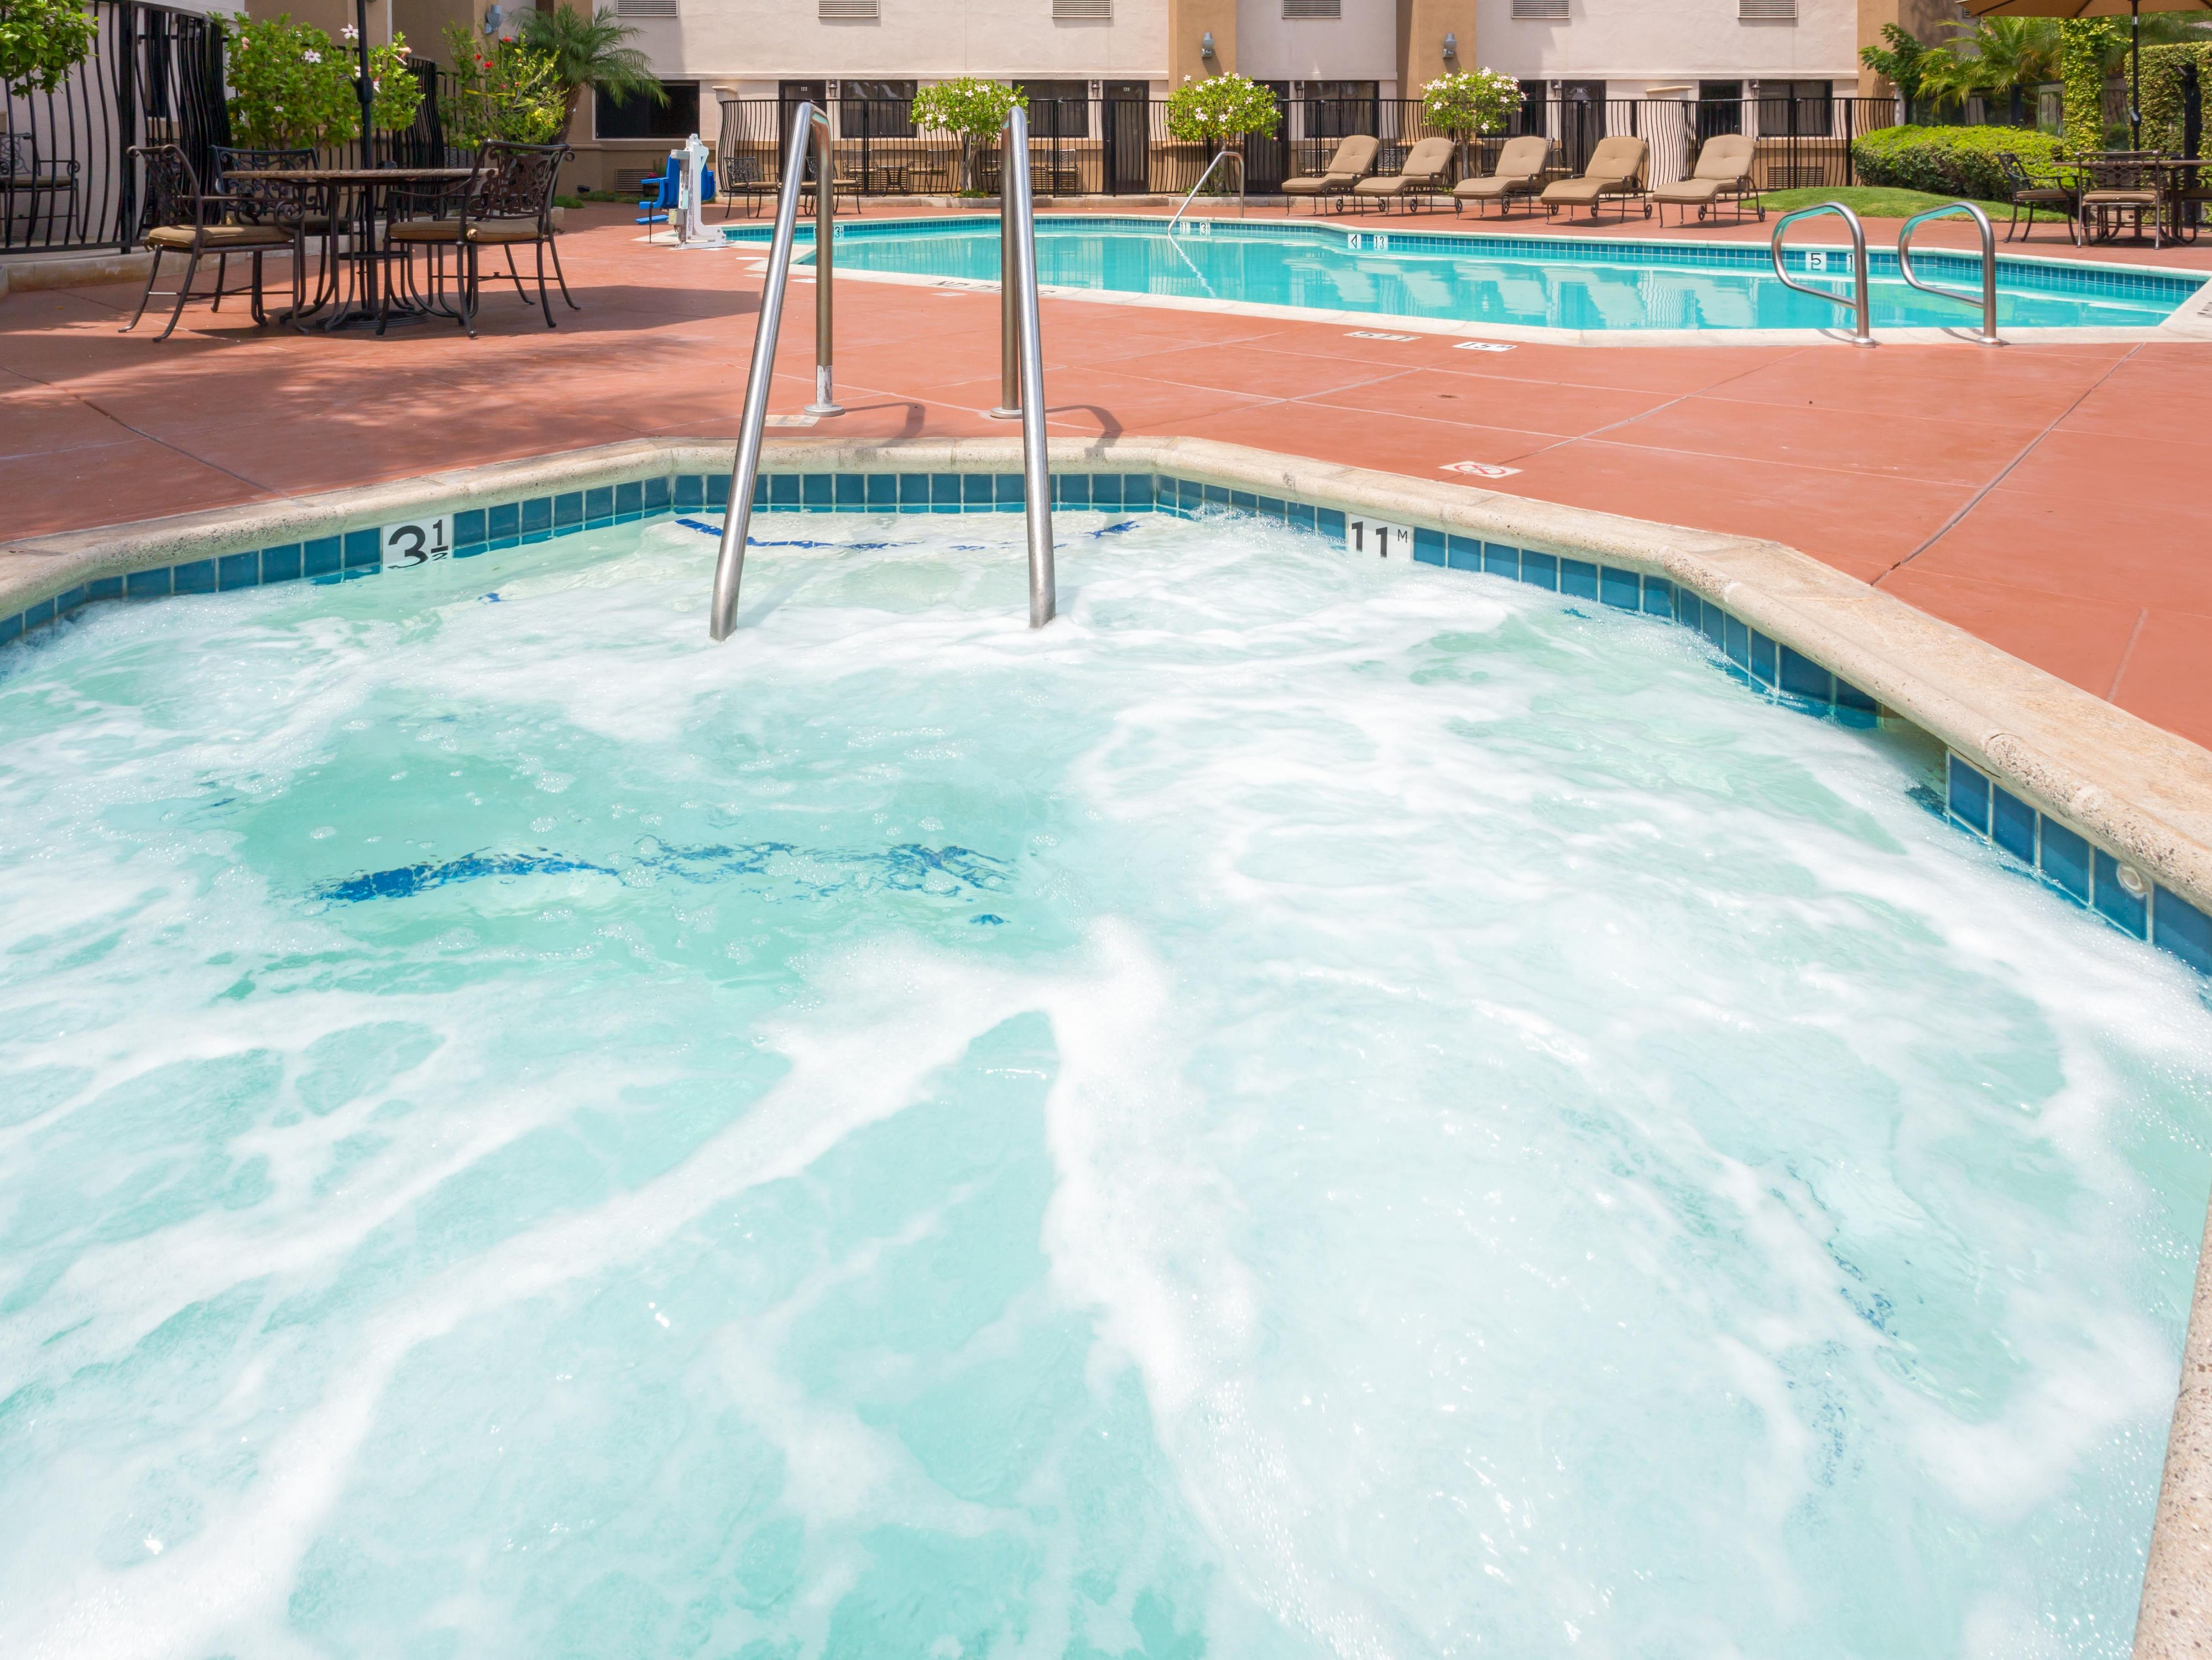 Enjoy our relaxing whirlpool at our Santa Ana hotel